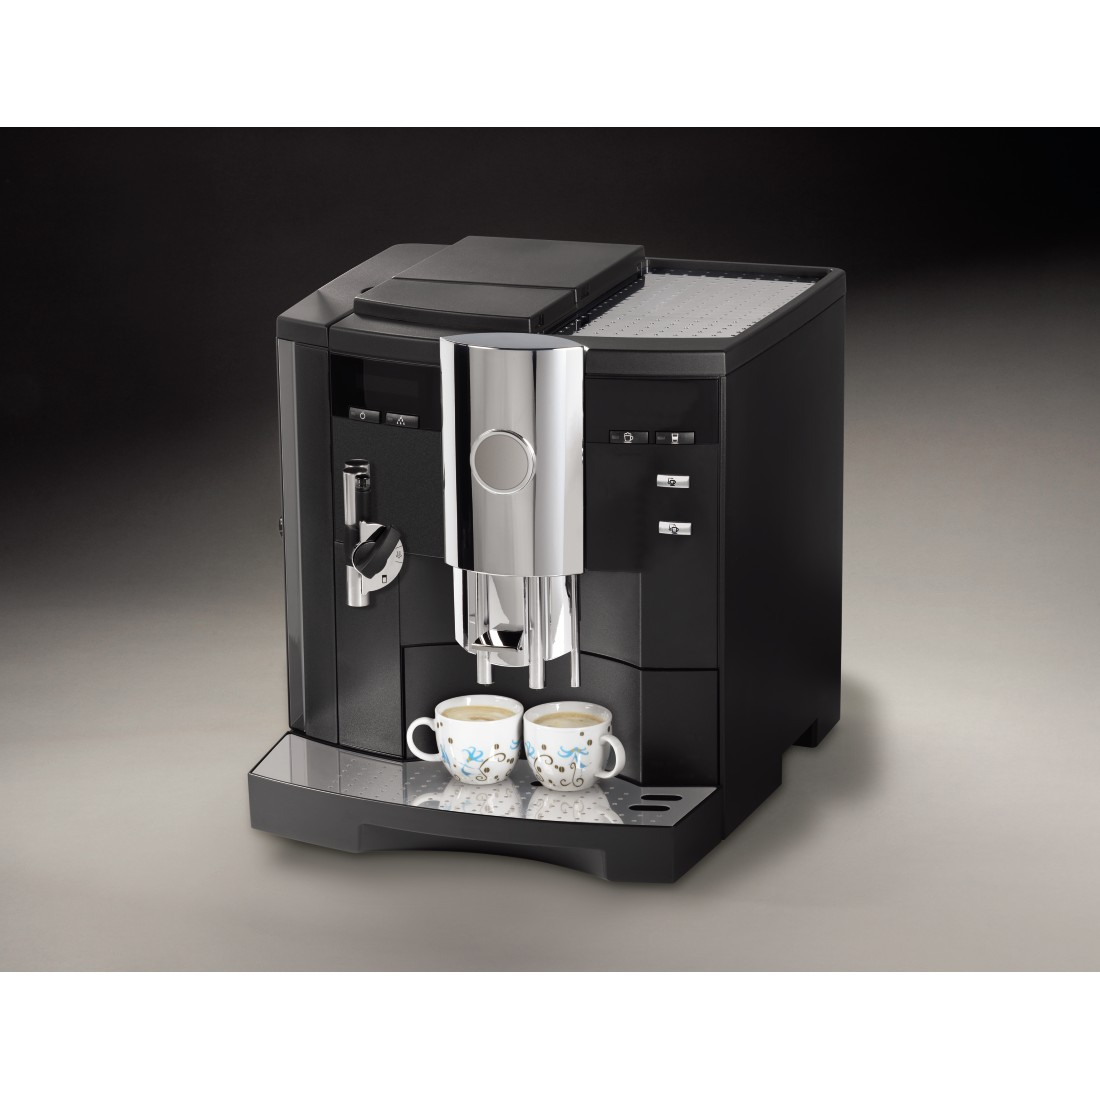 00110733 xavax cleaner for milk froth brewing devices. Black Bedroom Furniture Sets. Home Design Ideas